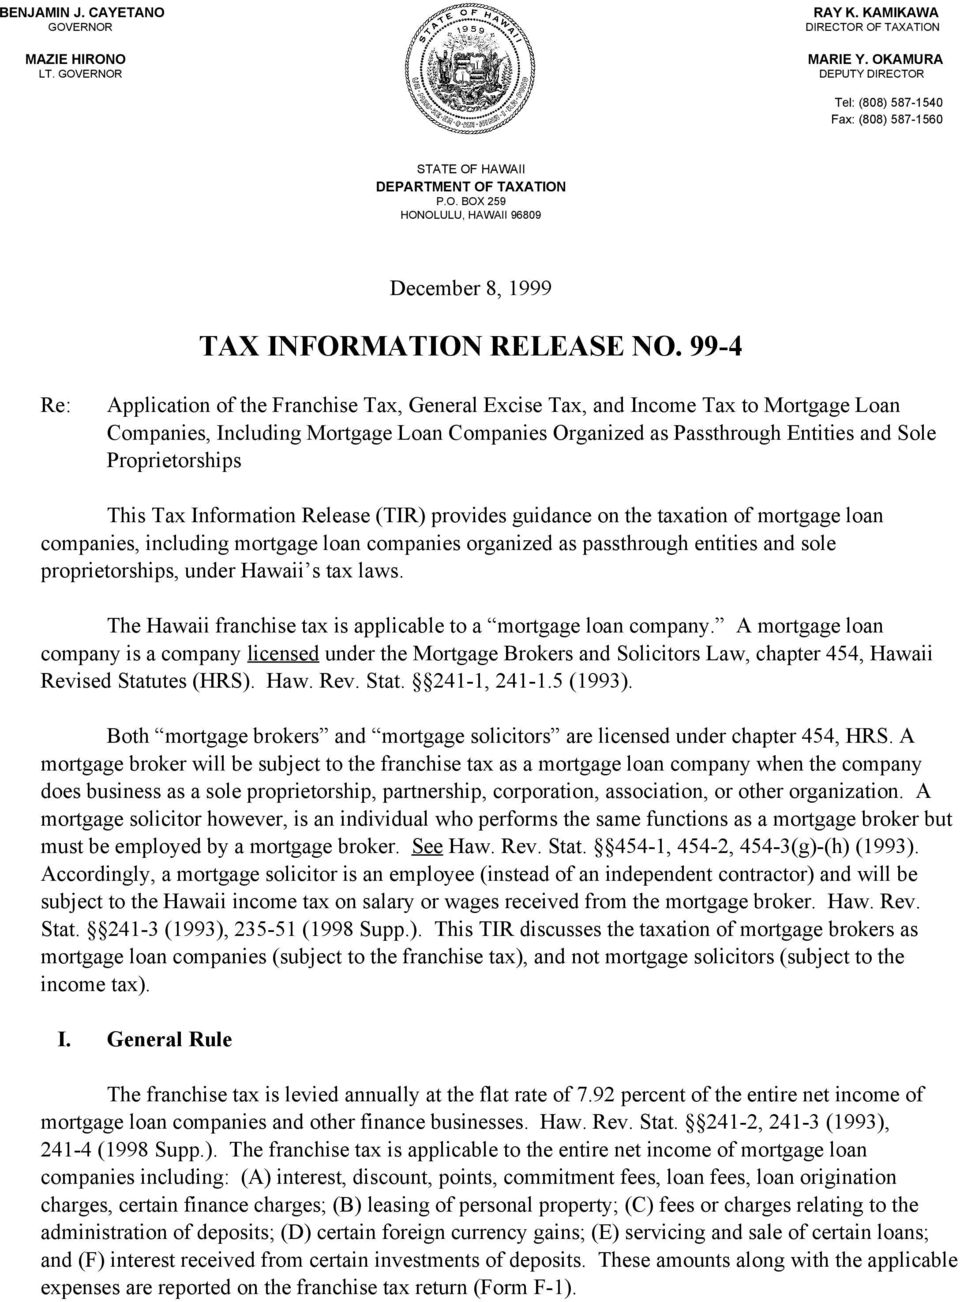 99-4 Re: Application of the Franchise Tax, General Excise Tax, and Income Tax to Mortgage Loan Companies, Including Mortgage Loan Companies Organized as Passthrough Entities and Sole Proprietorships